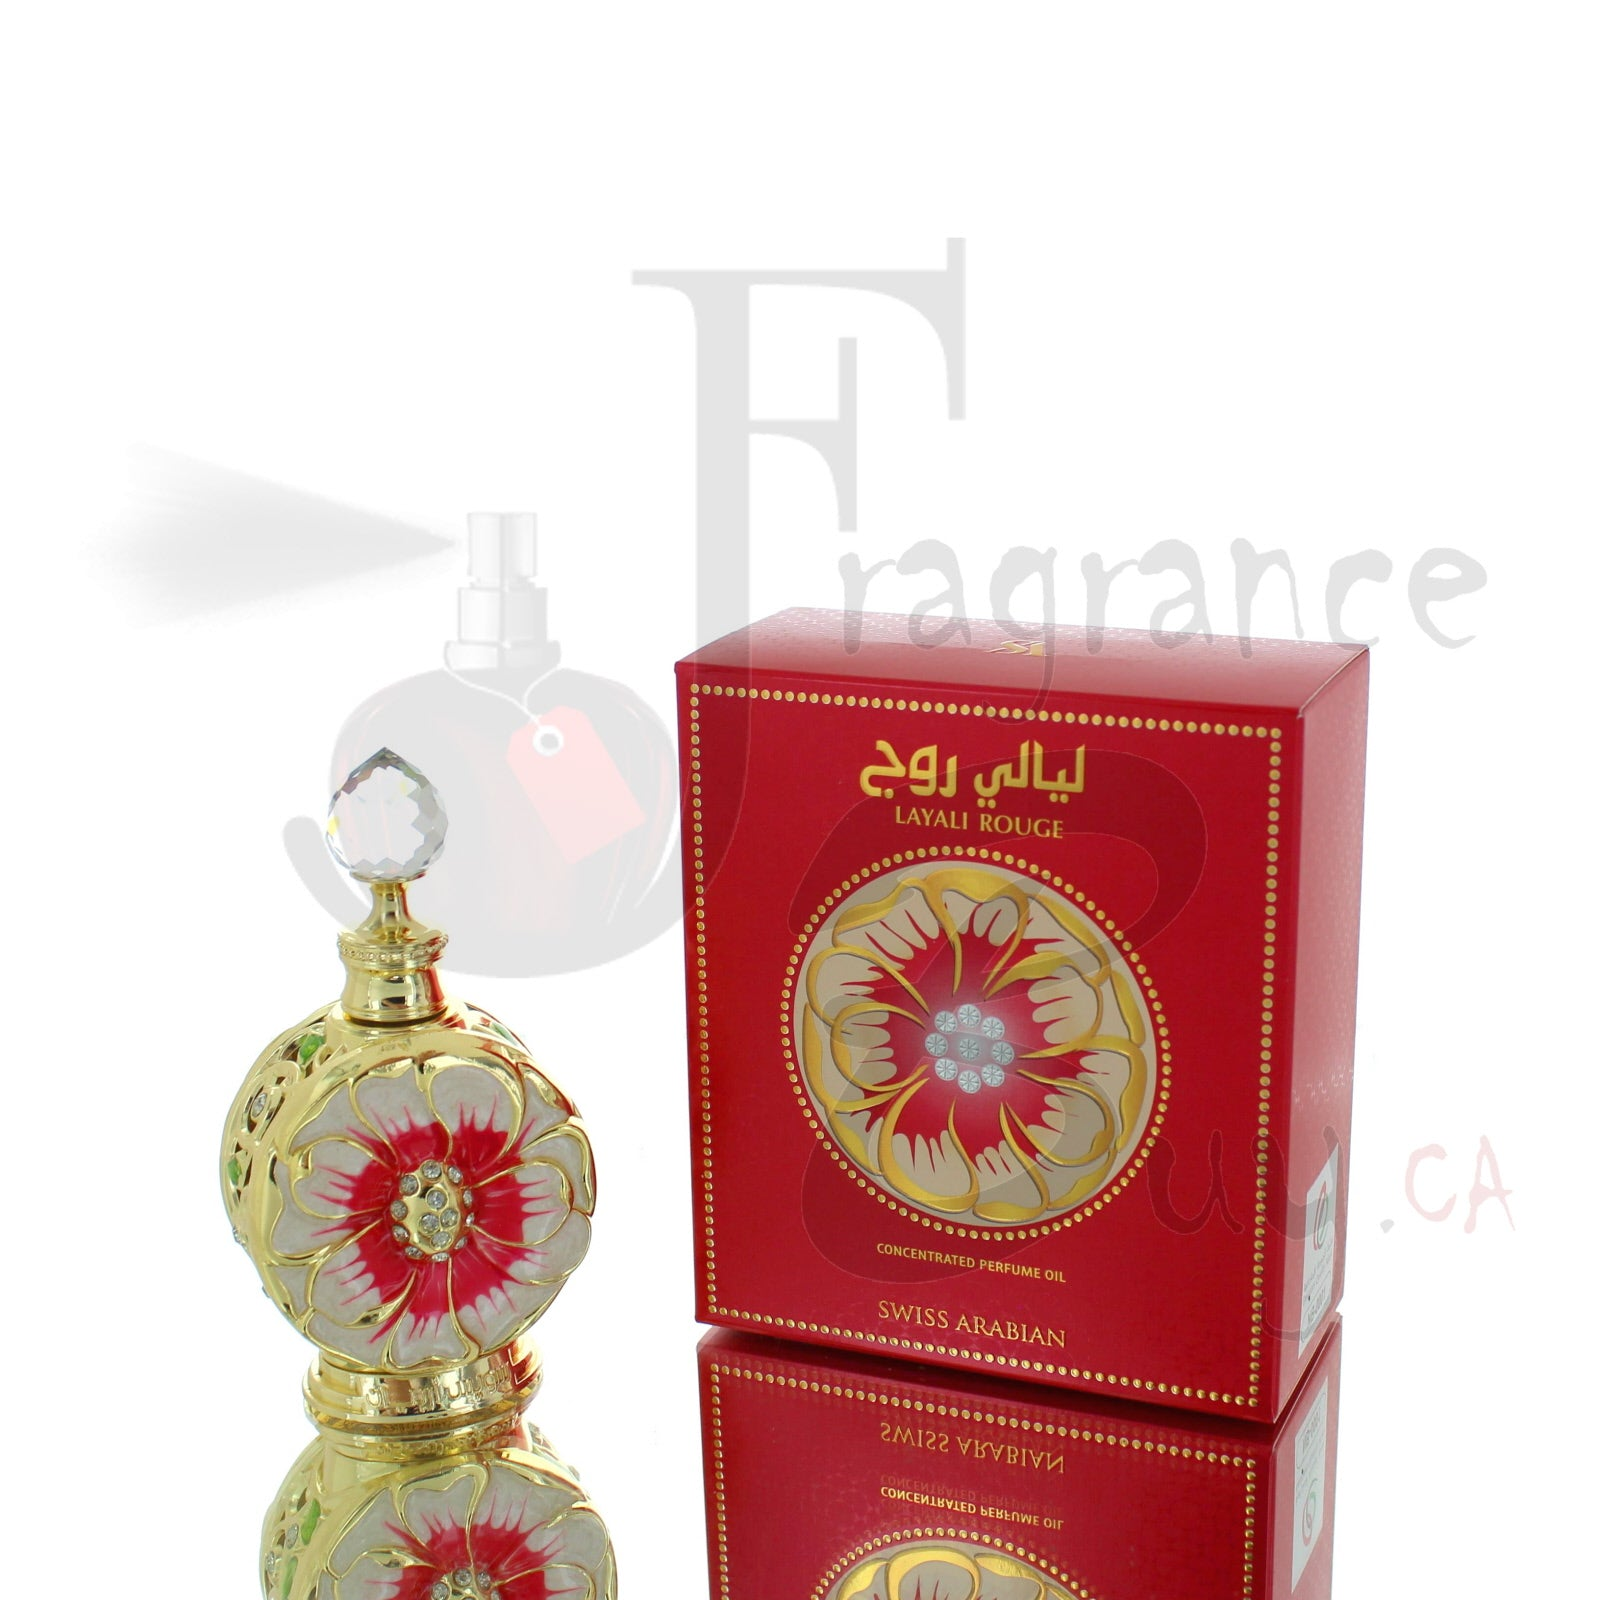 Swiss Arabian Layali Rouge Concentrated Perfume Oil For Woman